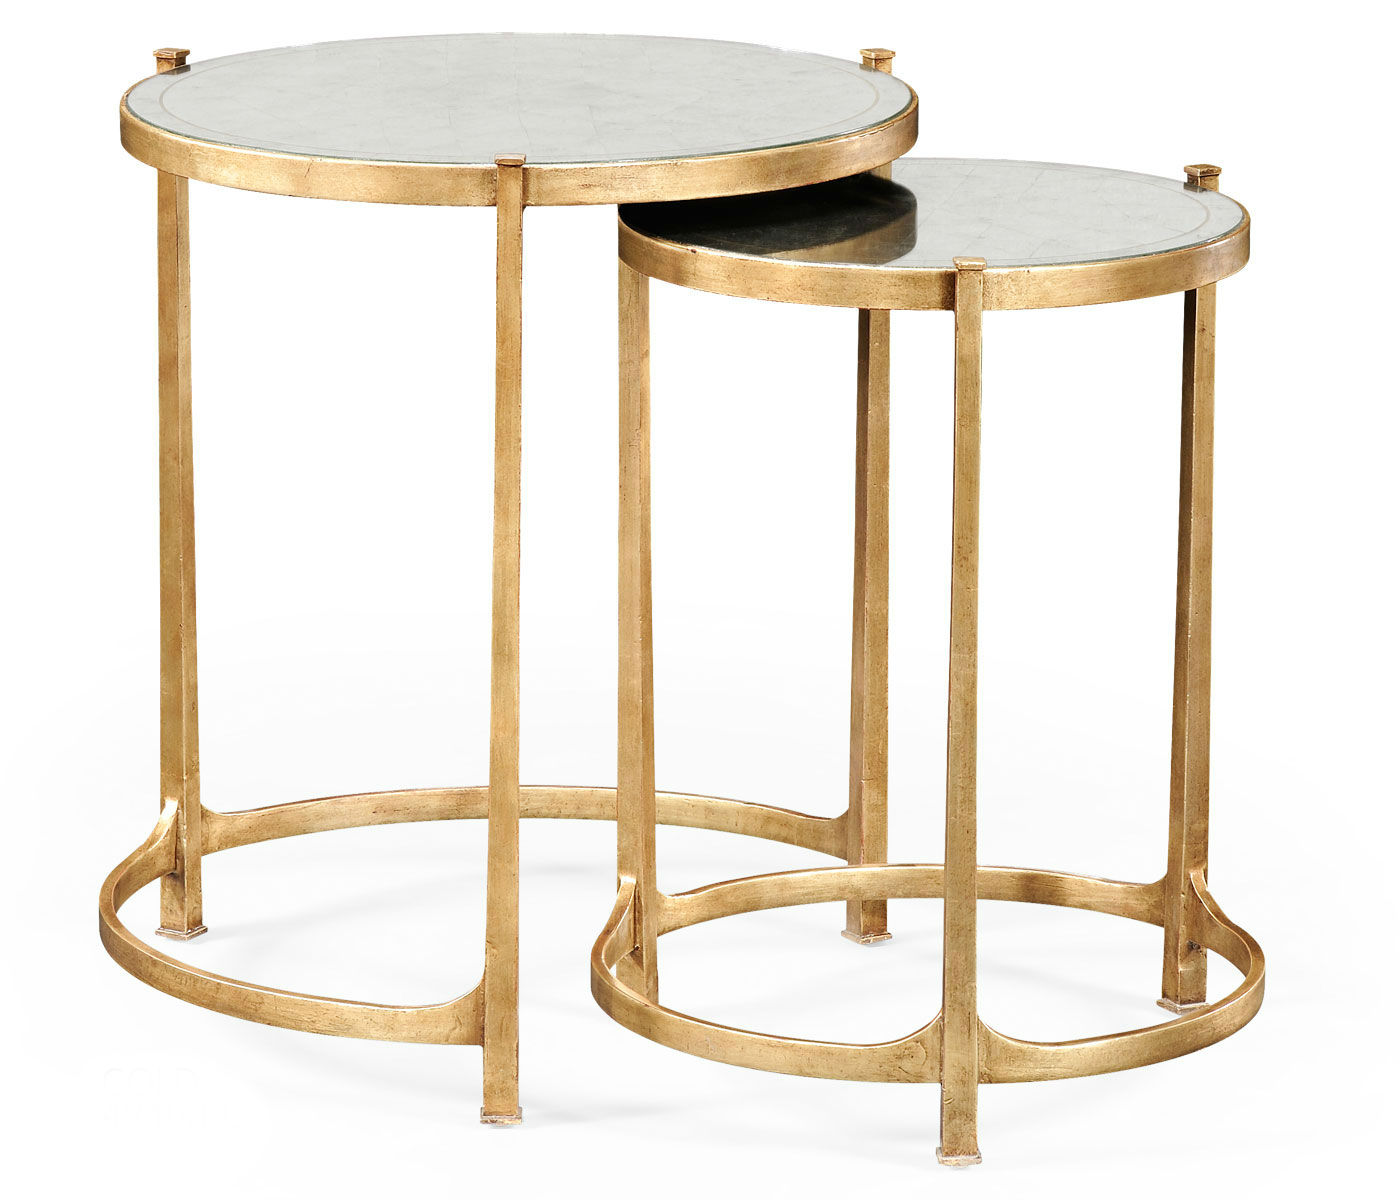 ethan allen rattan the terrific amazing set two end tables nesting gold side table elegant tall antiqued mirrored gilt partner accent console coffee available hospitality panthers